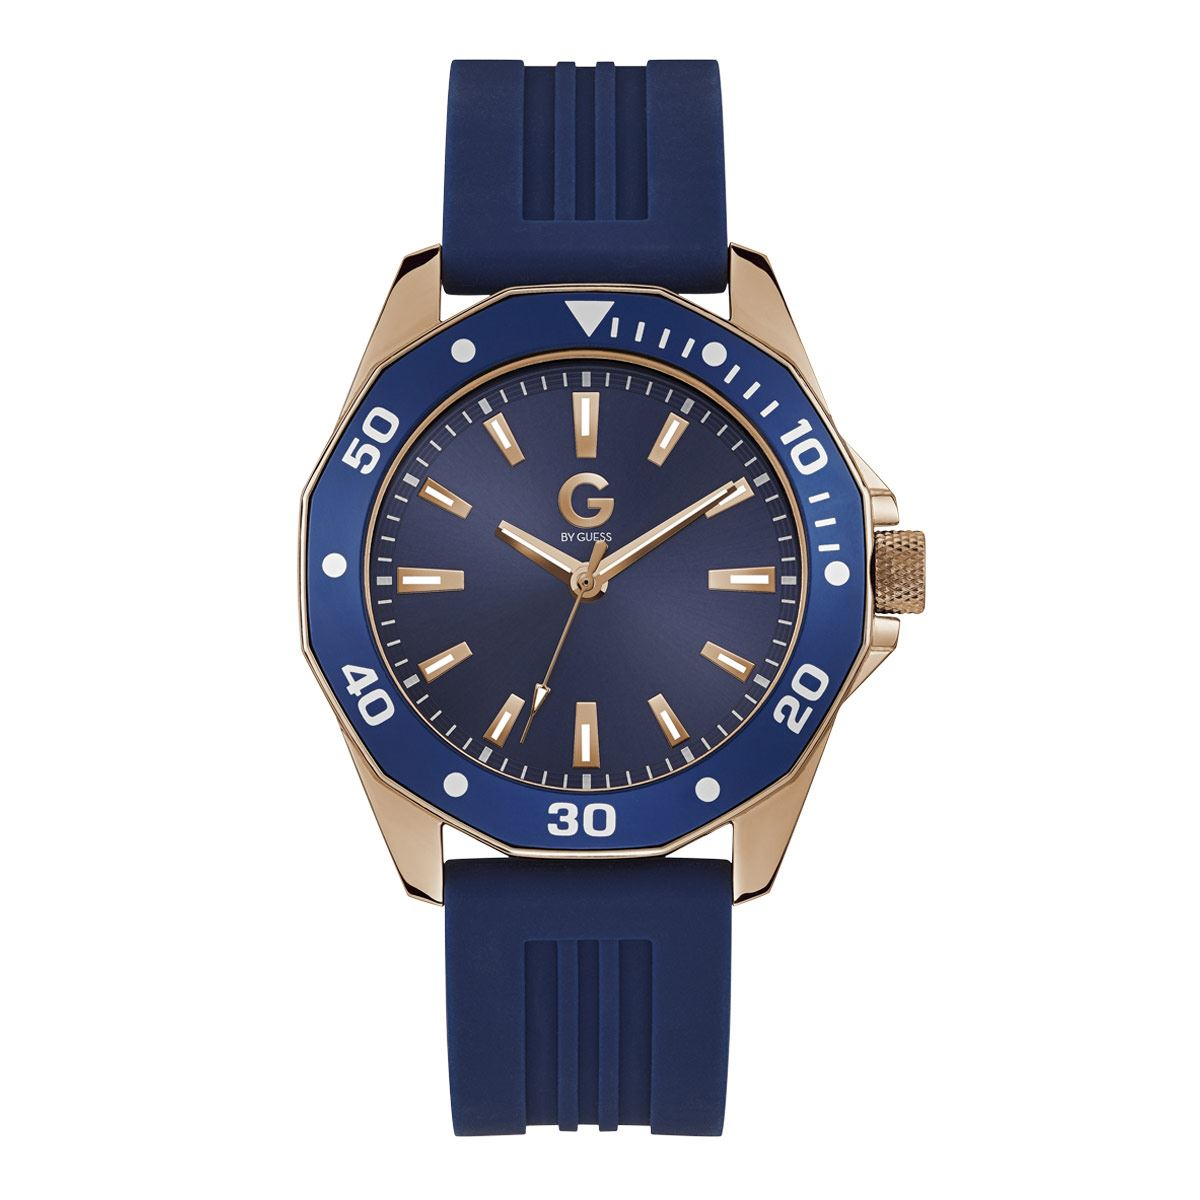 Reloj G by guess G94091G1 Cab